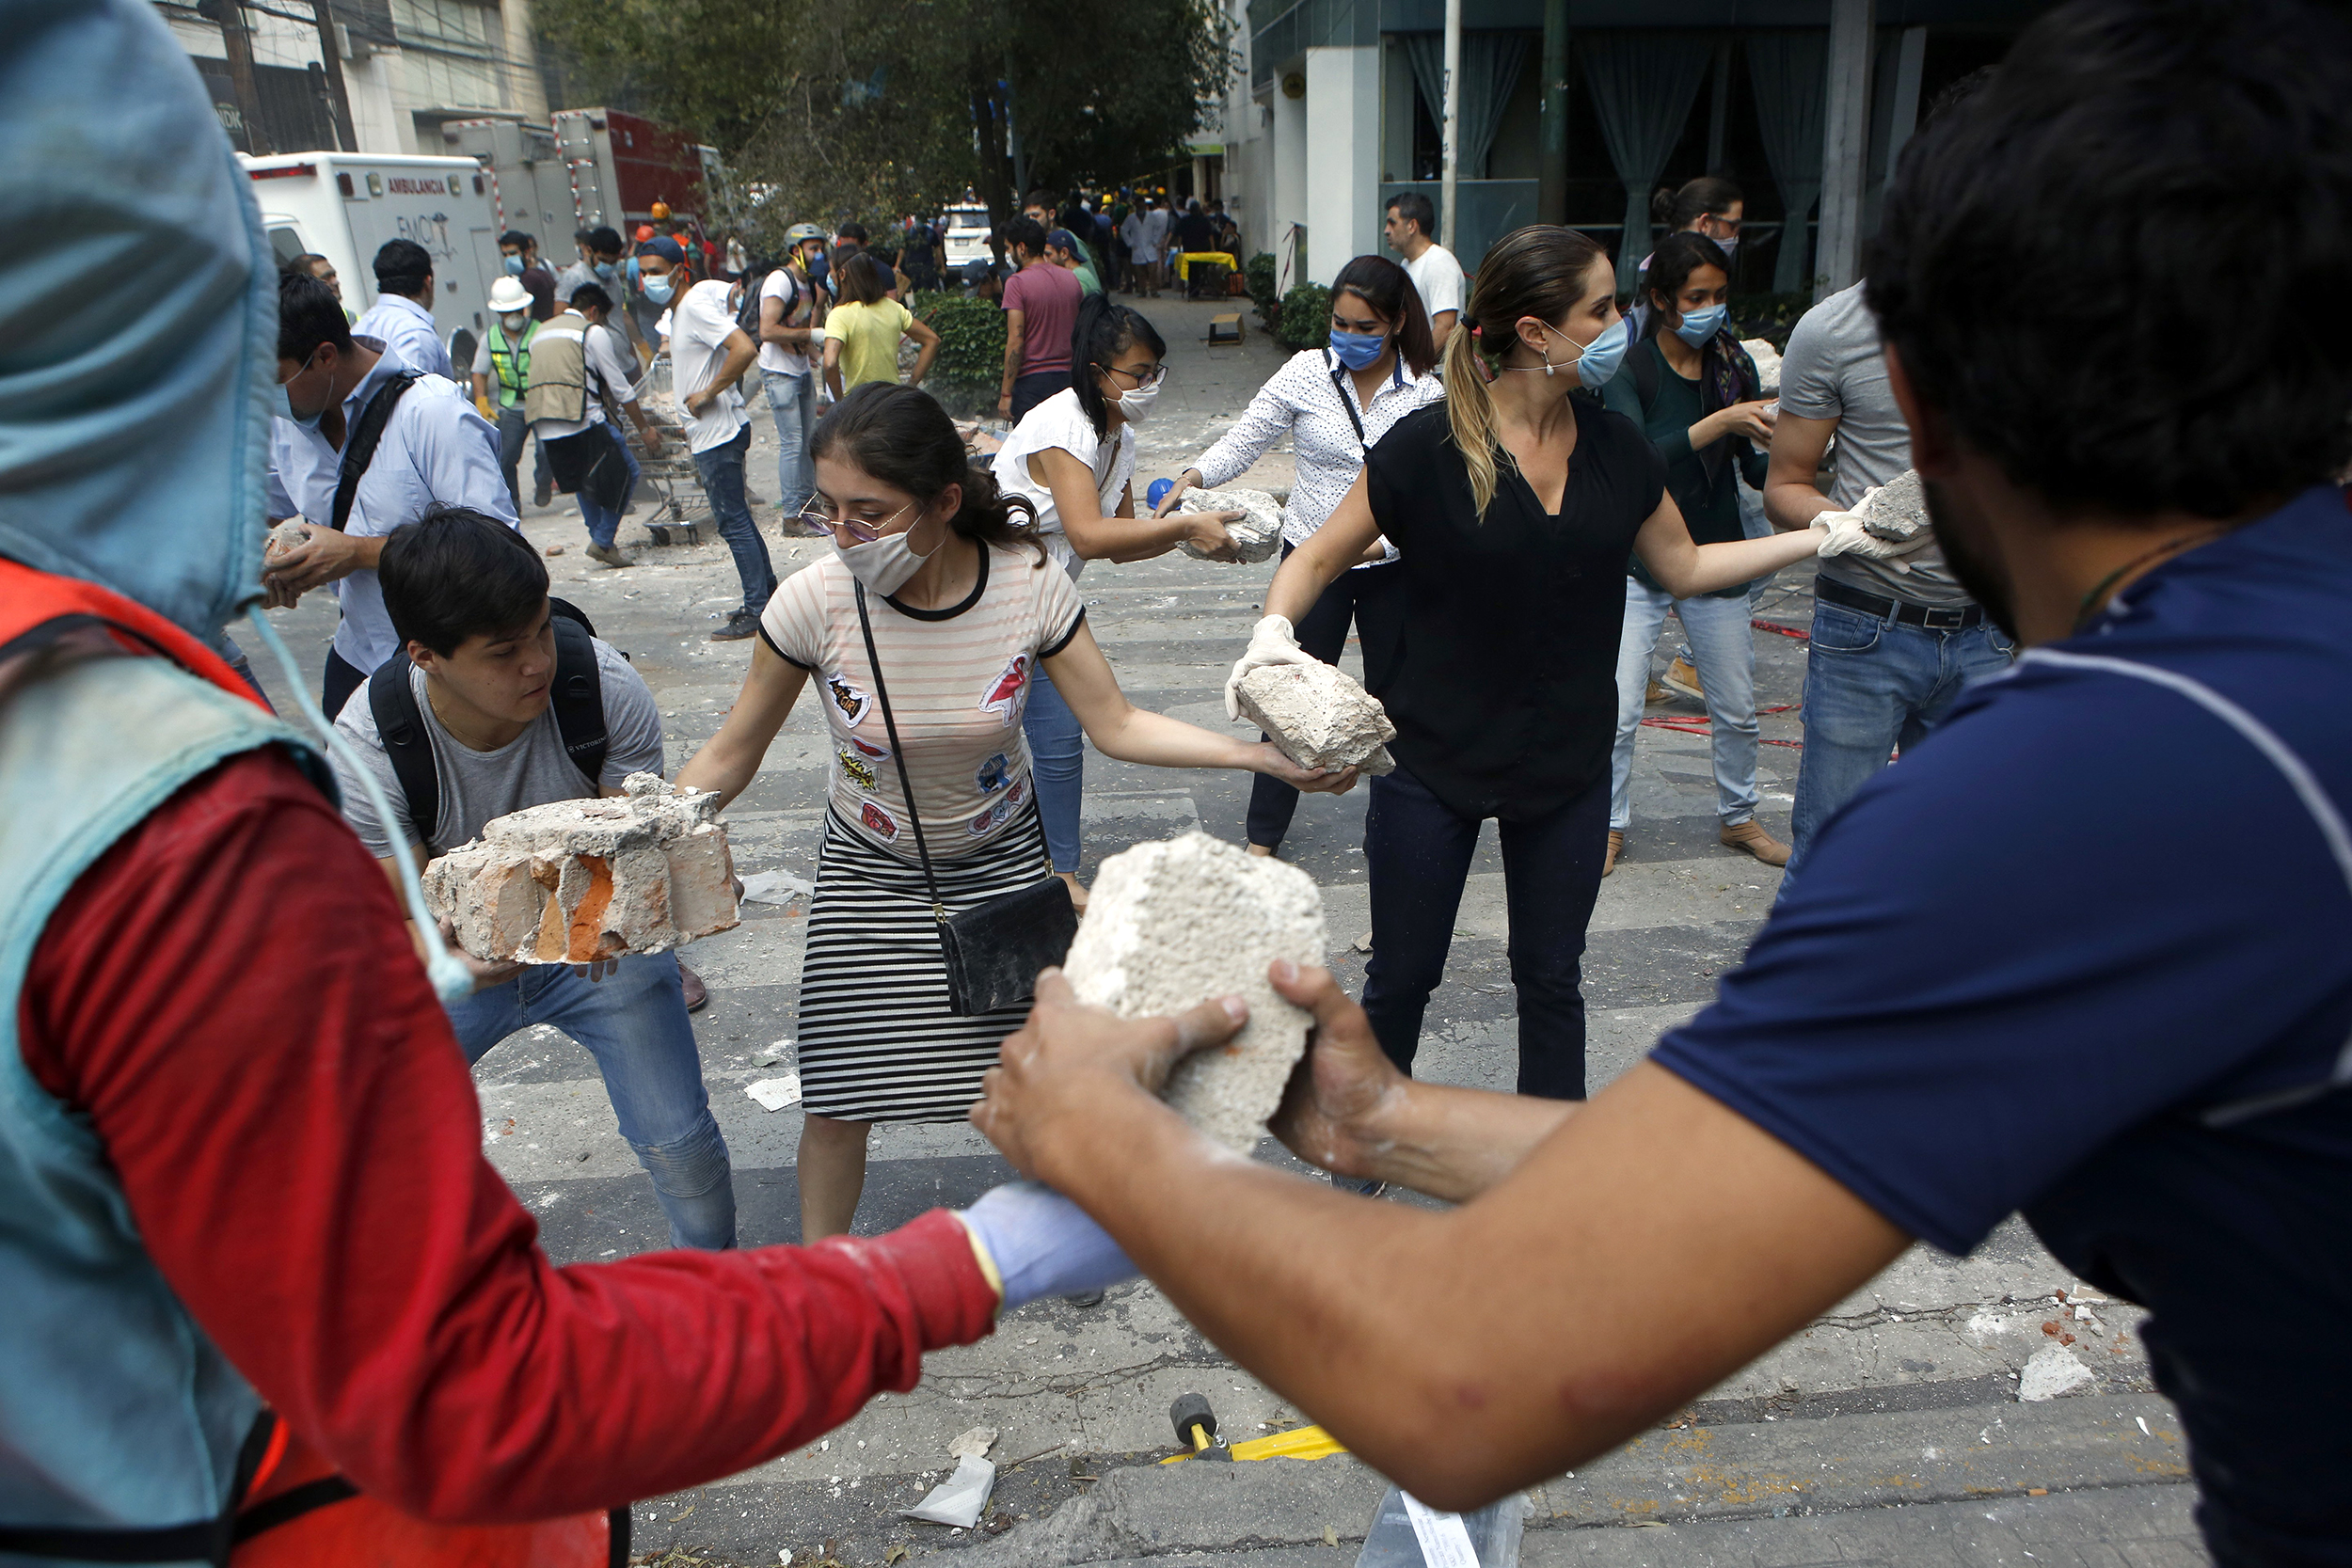 After Mexico Quake, California Urges Residents to Prepare for 'The Big One'